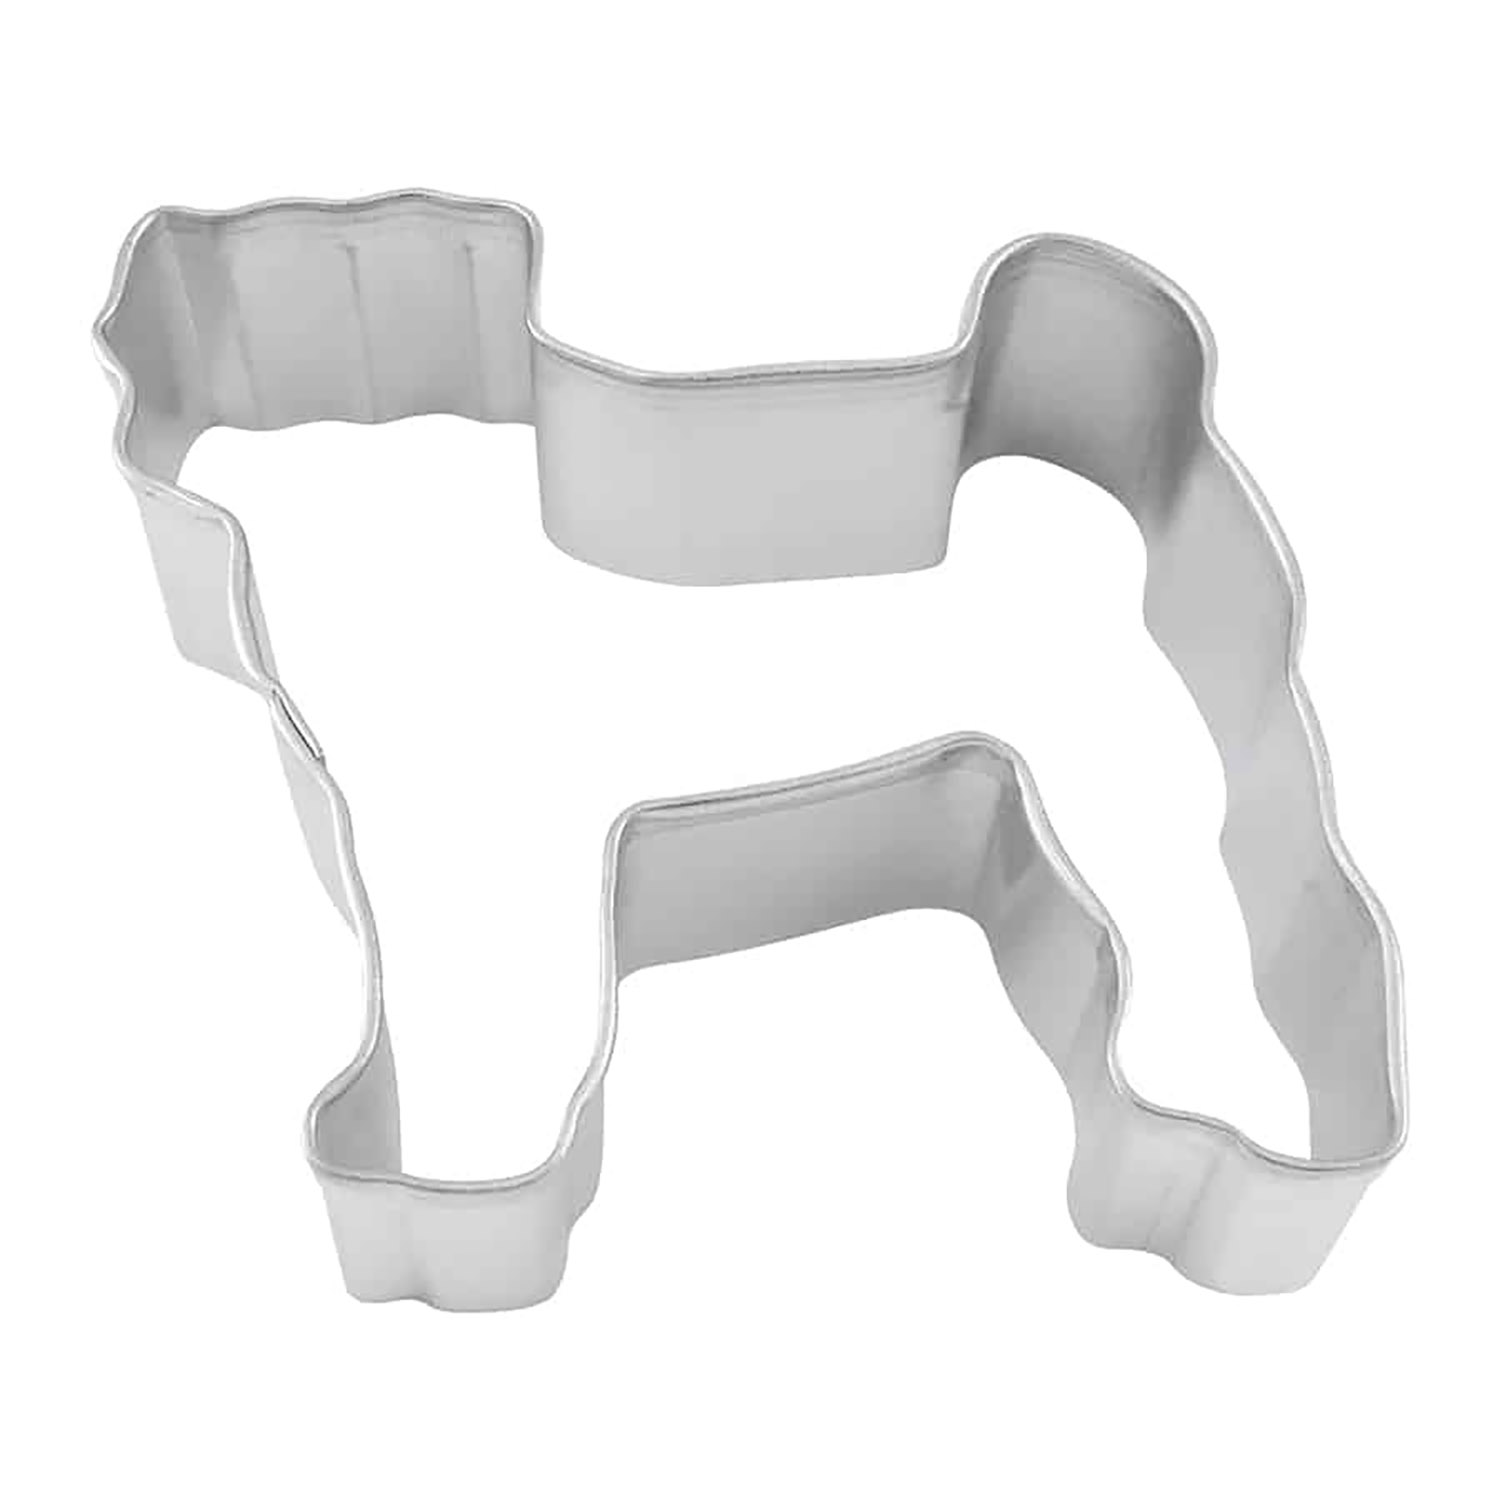 Pug Dog Cookie Cutter